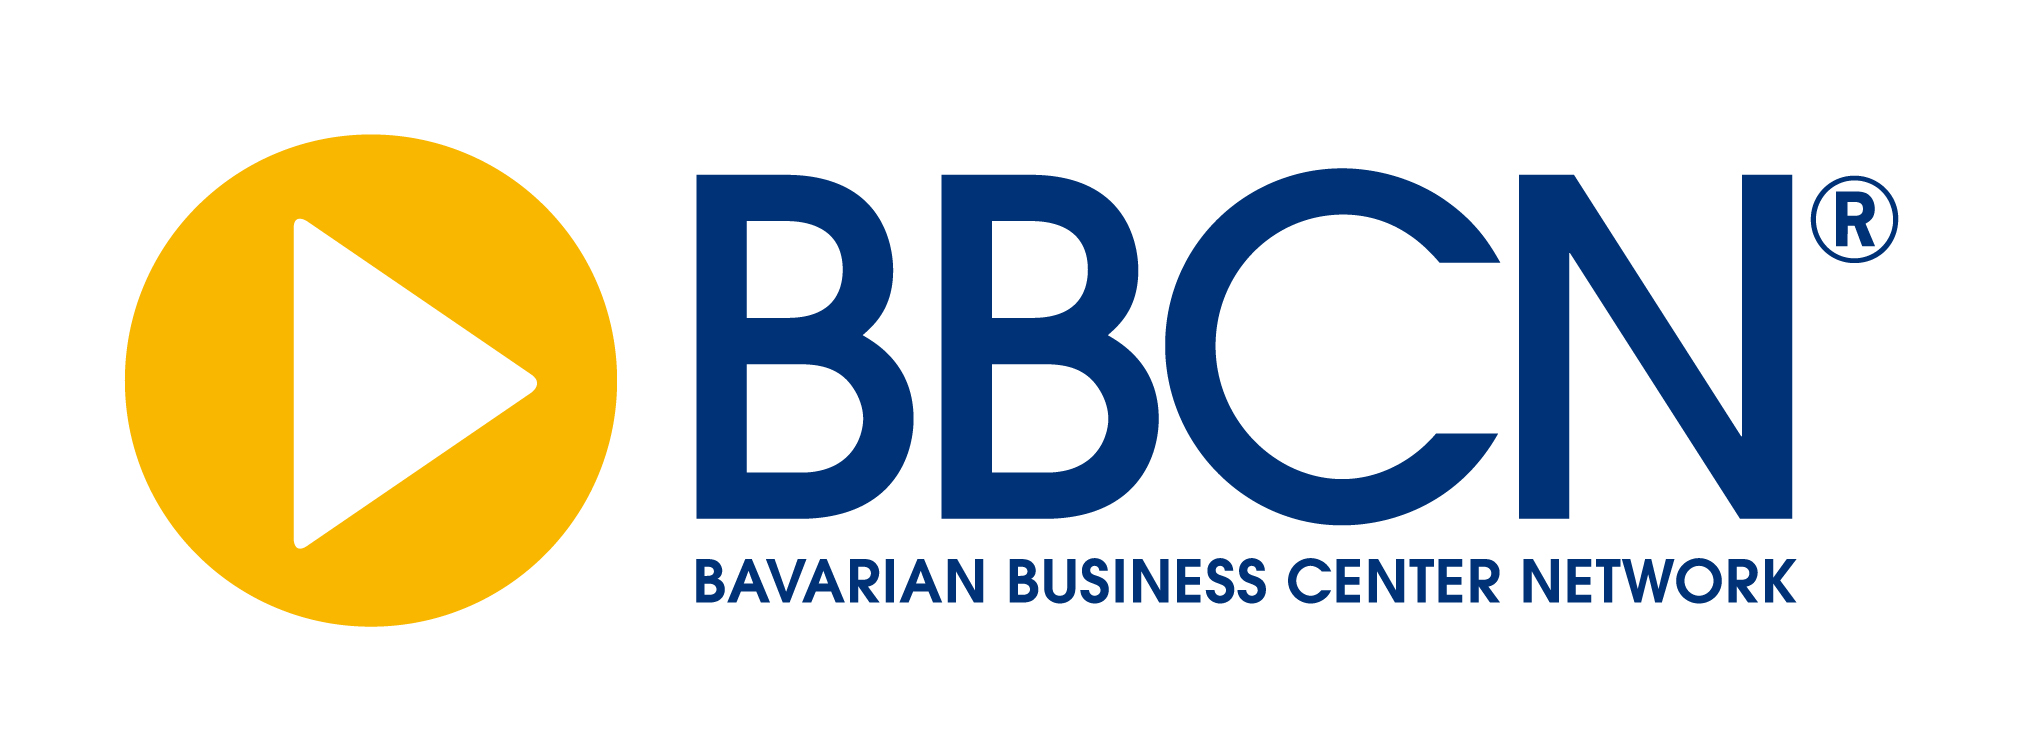 BBCN Bavarian Business Center Network Nürnberg